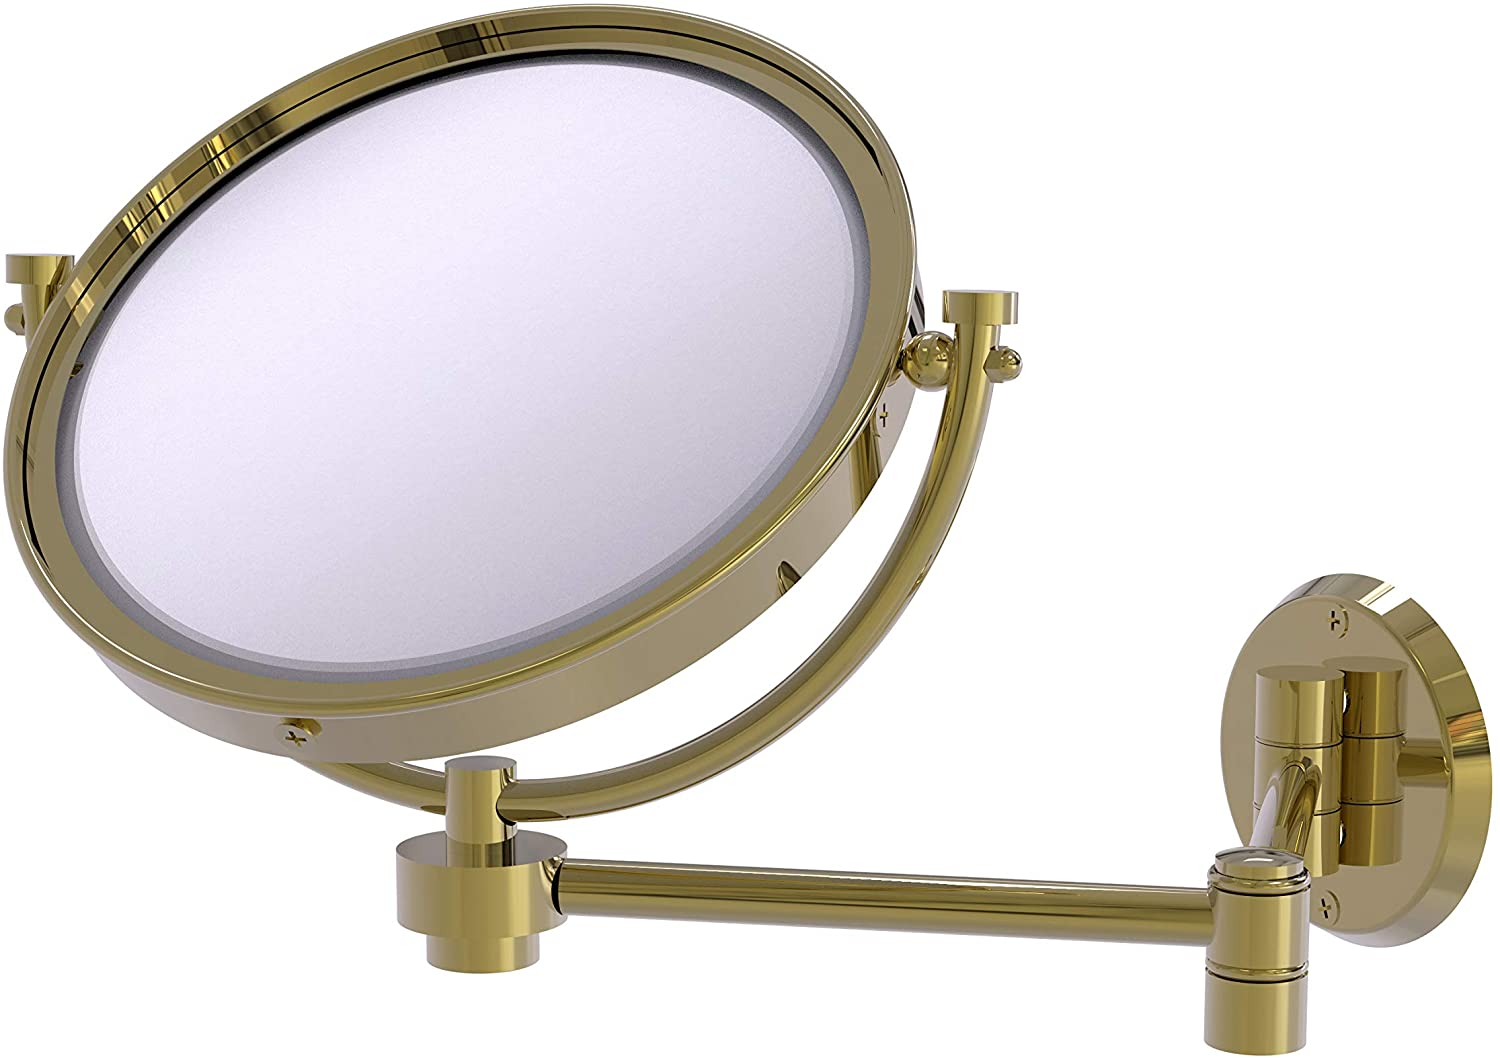 Allied Brass WM-6/4X 8 Inch Wall Mounted Extending 4X Magnification Make-Up Mirror, Unlacquered Brass